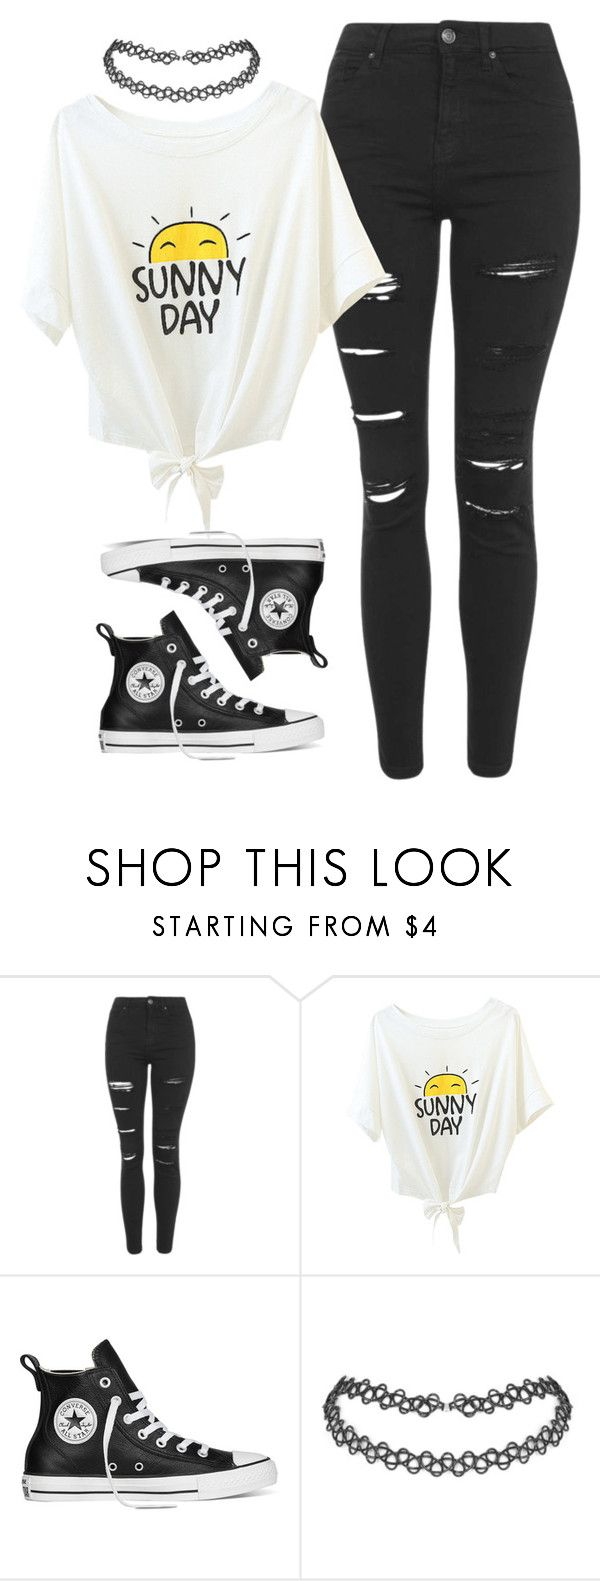 """Untitled #121"" by frizzypop ❤ liked on Polyvore featuring moda, Topshop y Converse"